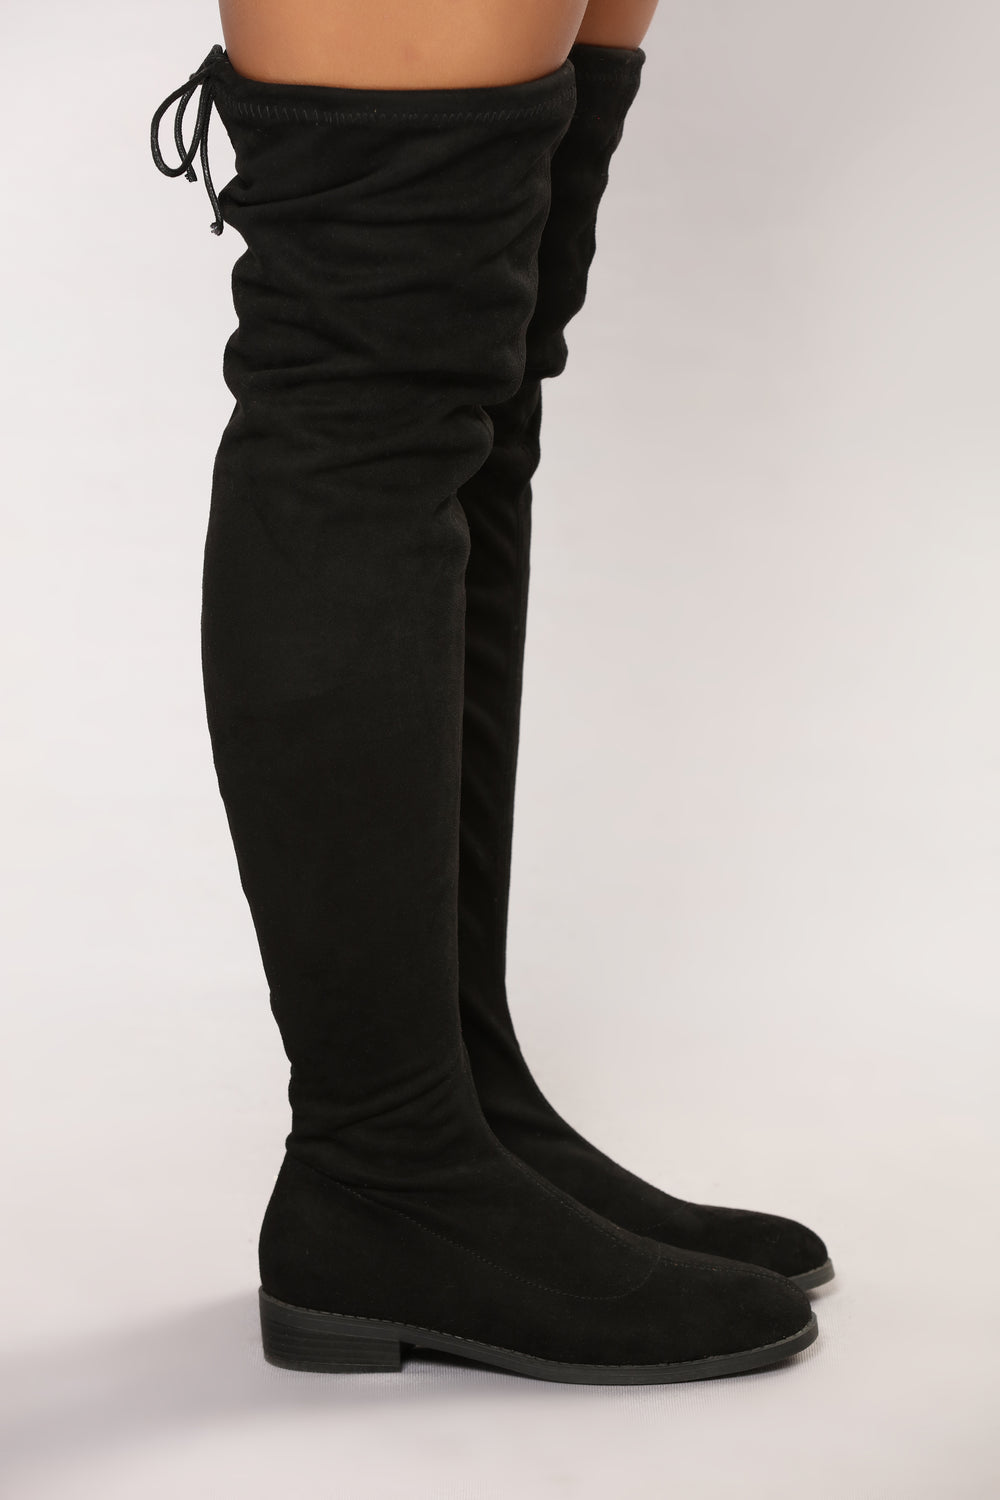 Stomp Statement Over The Knee Boot - Black